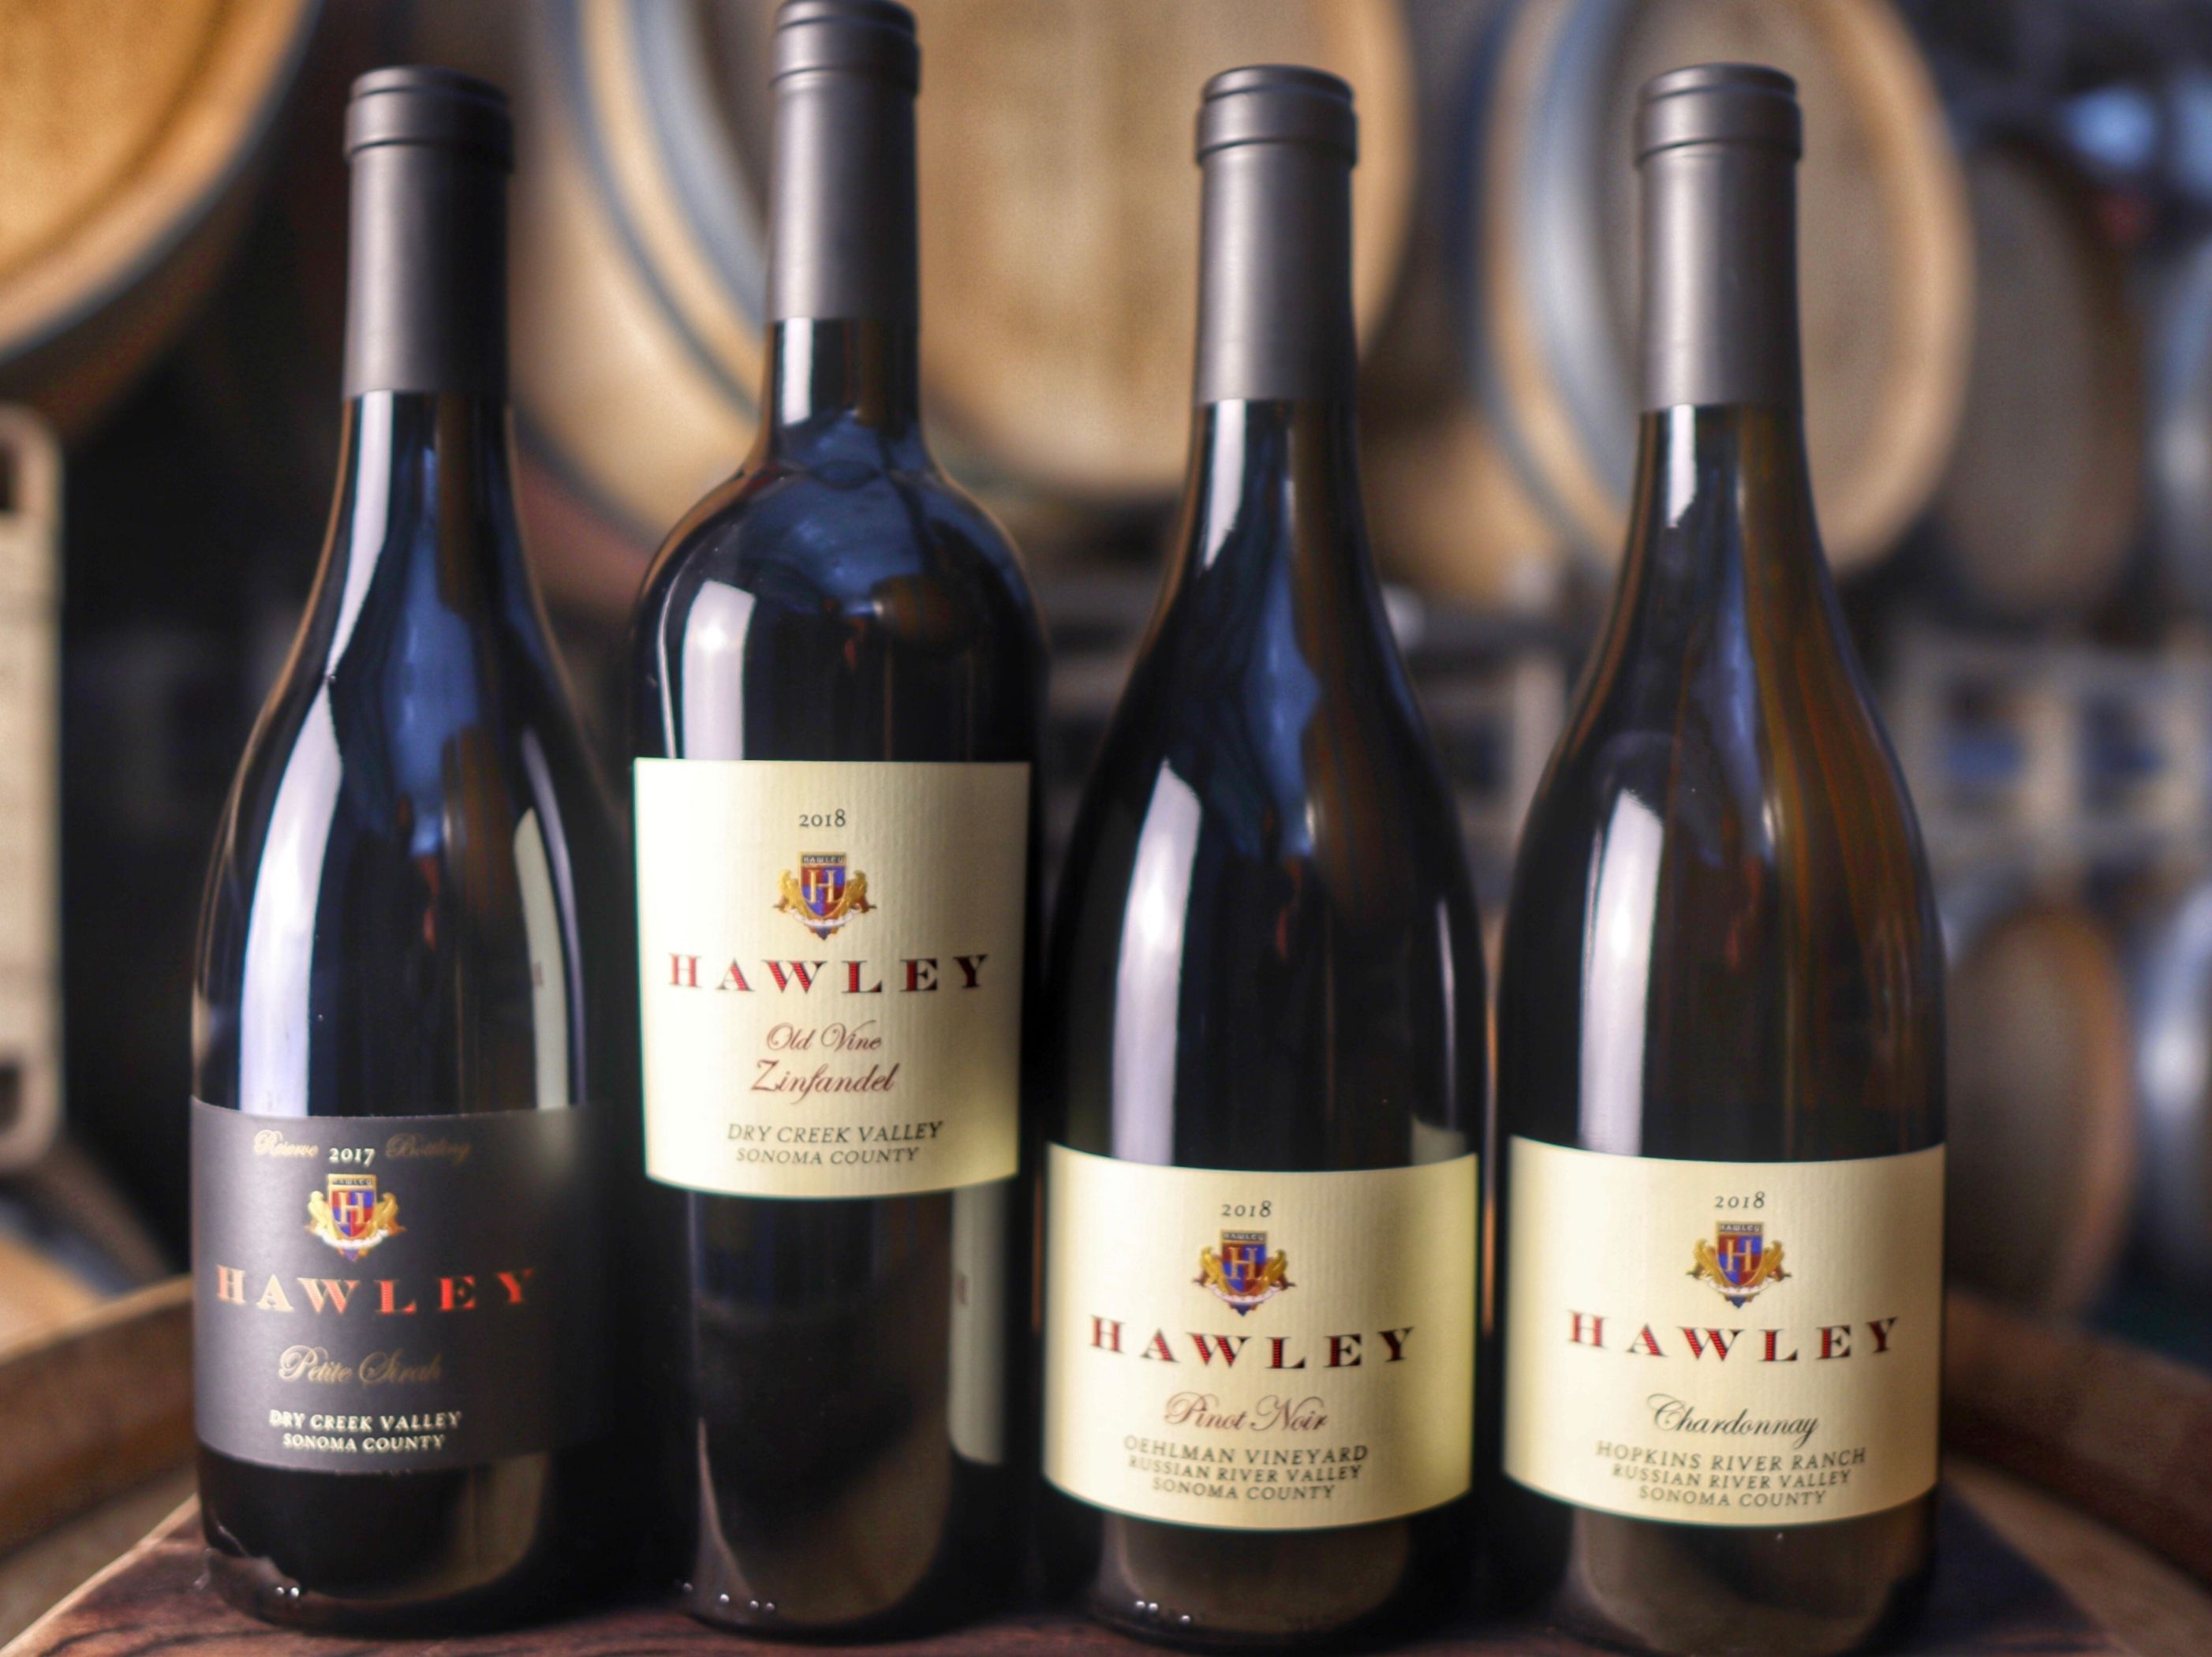 Hawley Fall 2020 release wine bottles